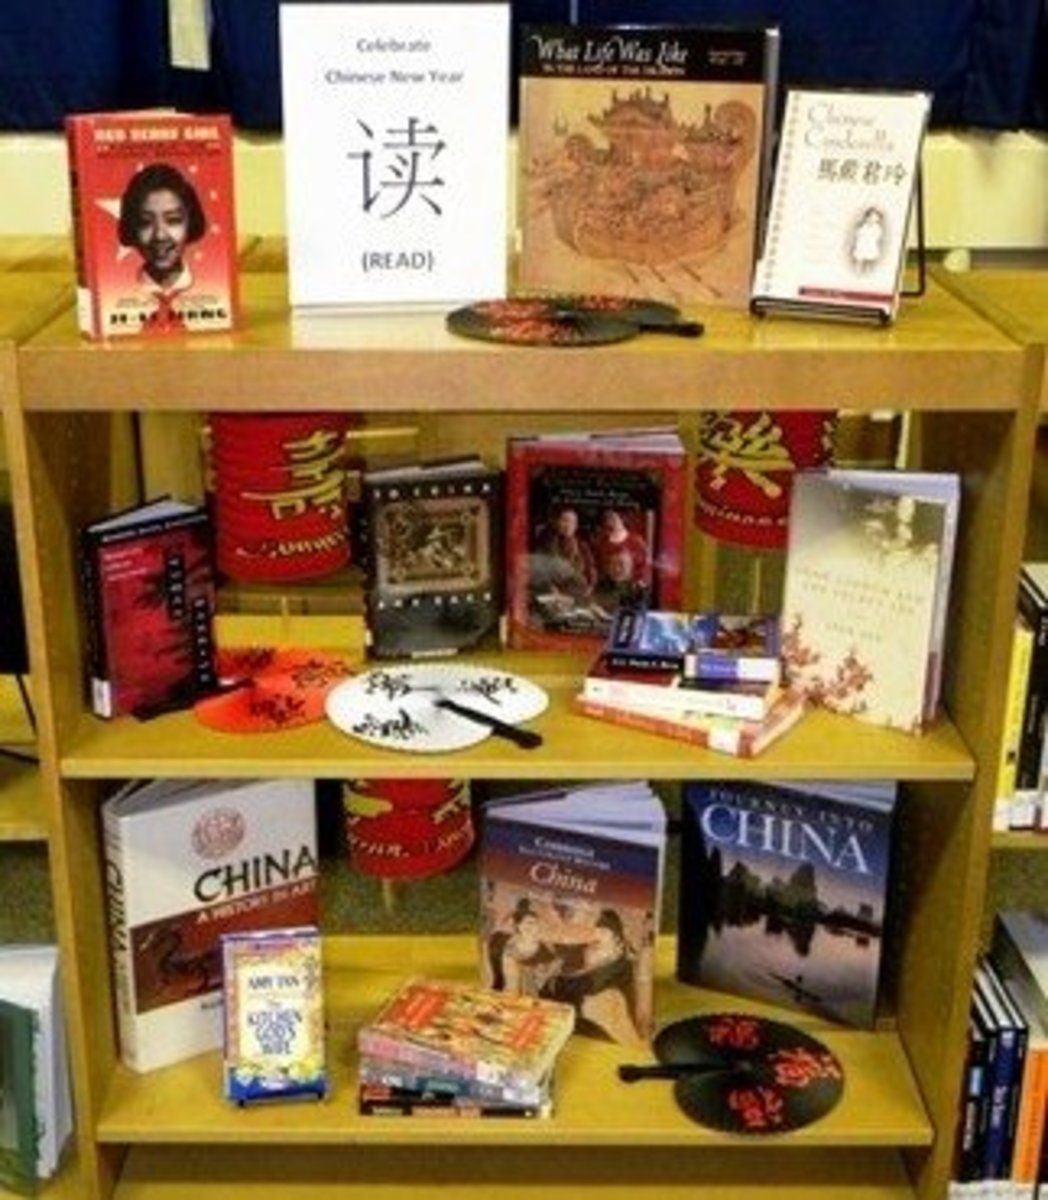 Chinese New Year book display (shared by Sharon Moore)